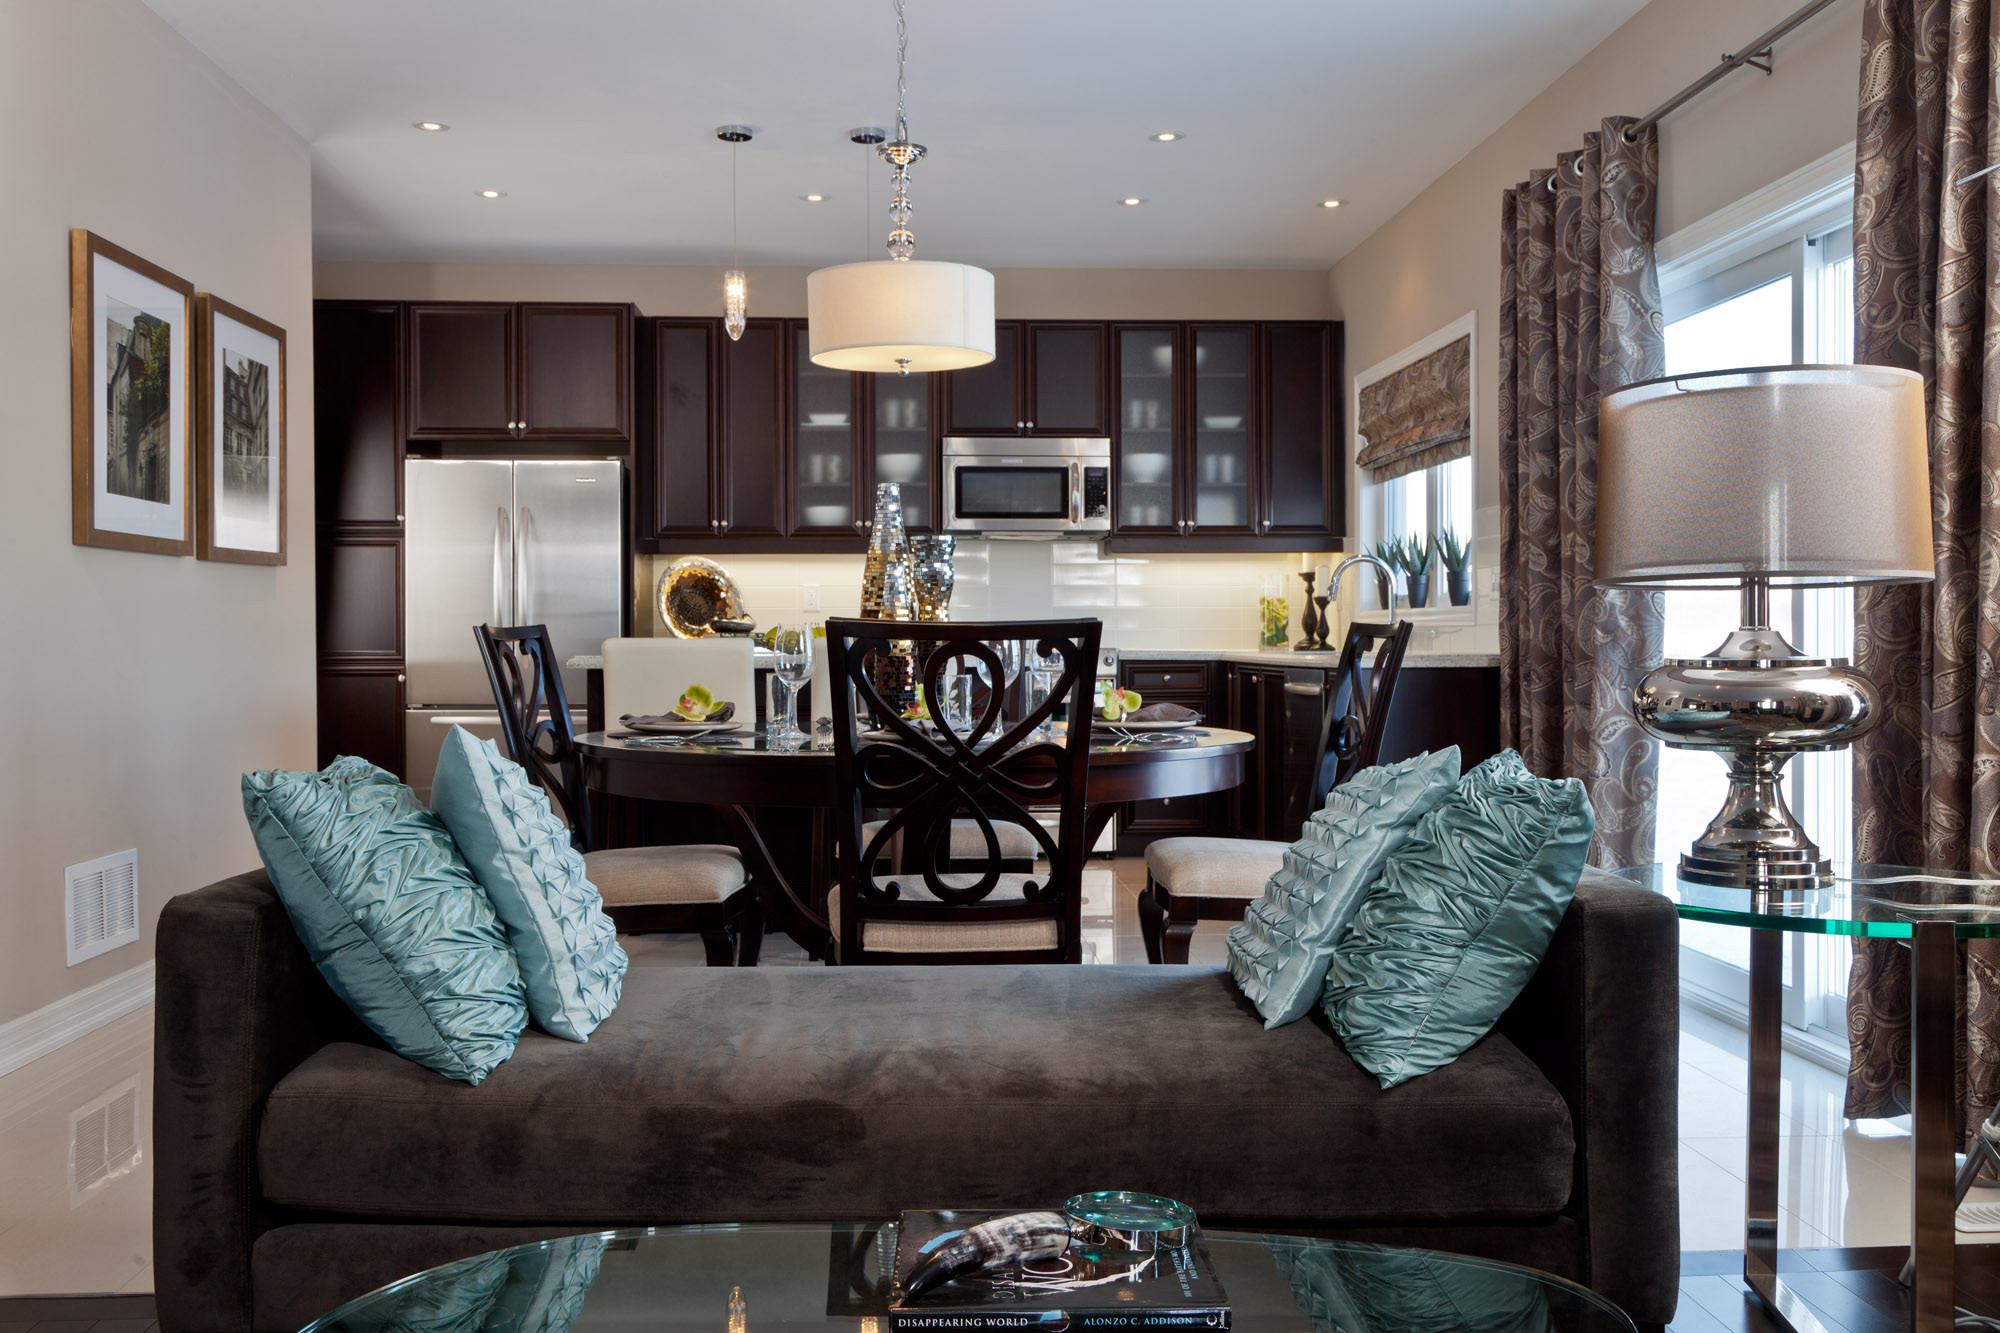 Best ideas about Kitchen Open To Family Room . Save or Pin Kitchen lamp open kitchen living room layouts open Now.